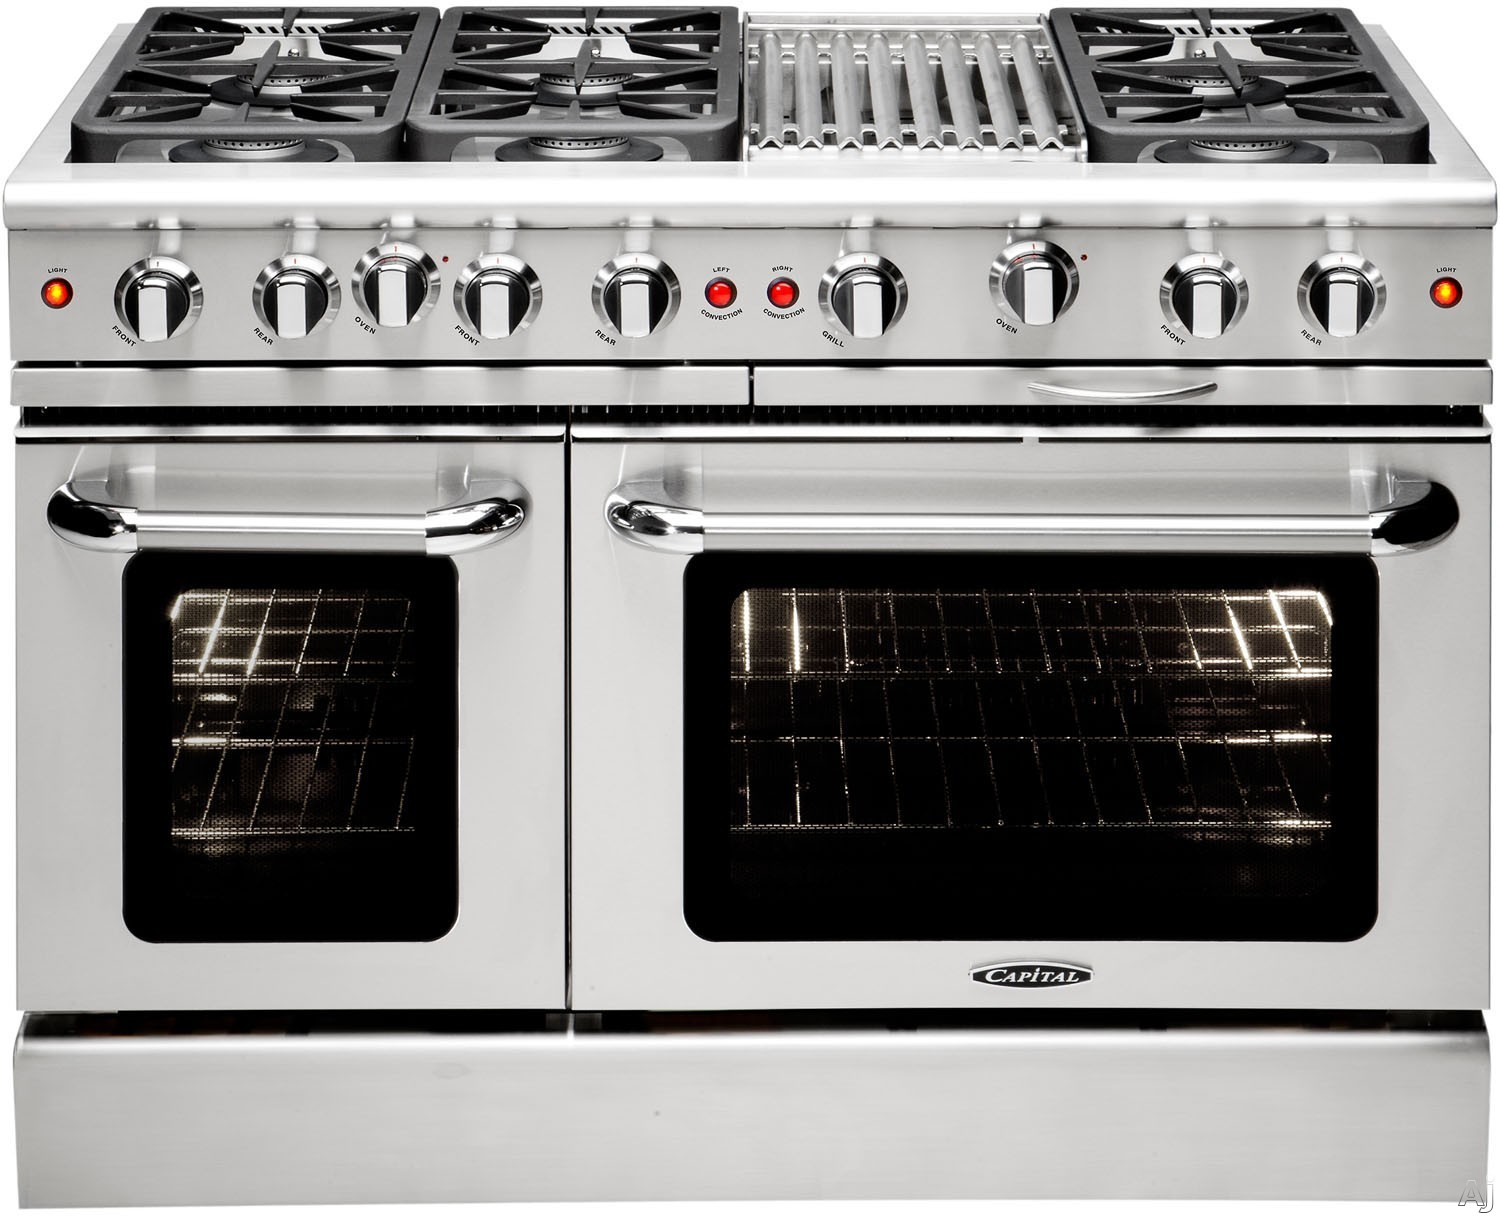 Capital Precision Series MCR486BL 48 Inch Freestanding Gas Range with 6 Sealed Burners, 19,000 BTU, 4.9 cu. ft. Oven, 30,000 BTU Oven Bake, Hybrid Radiant BBQ Grill, Interior Oven Light and Continuous